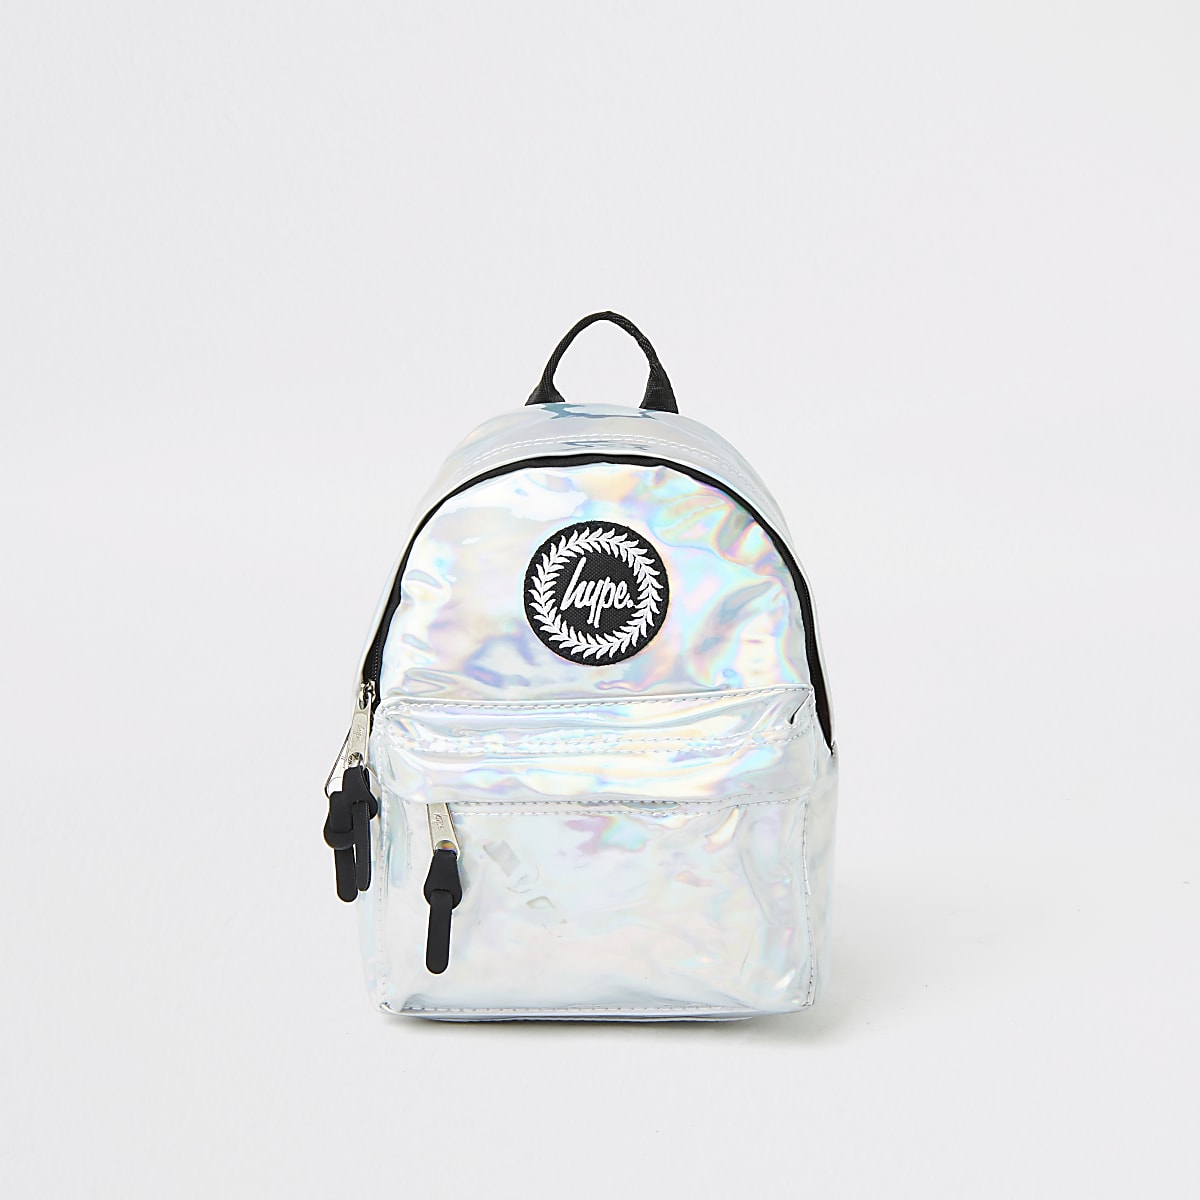 Girls Hype silver mirrored mini backpack